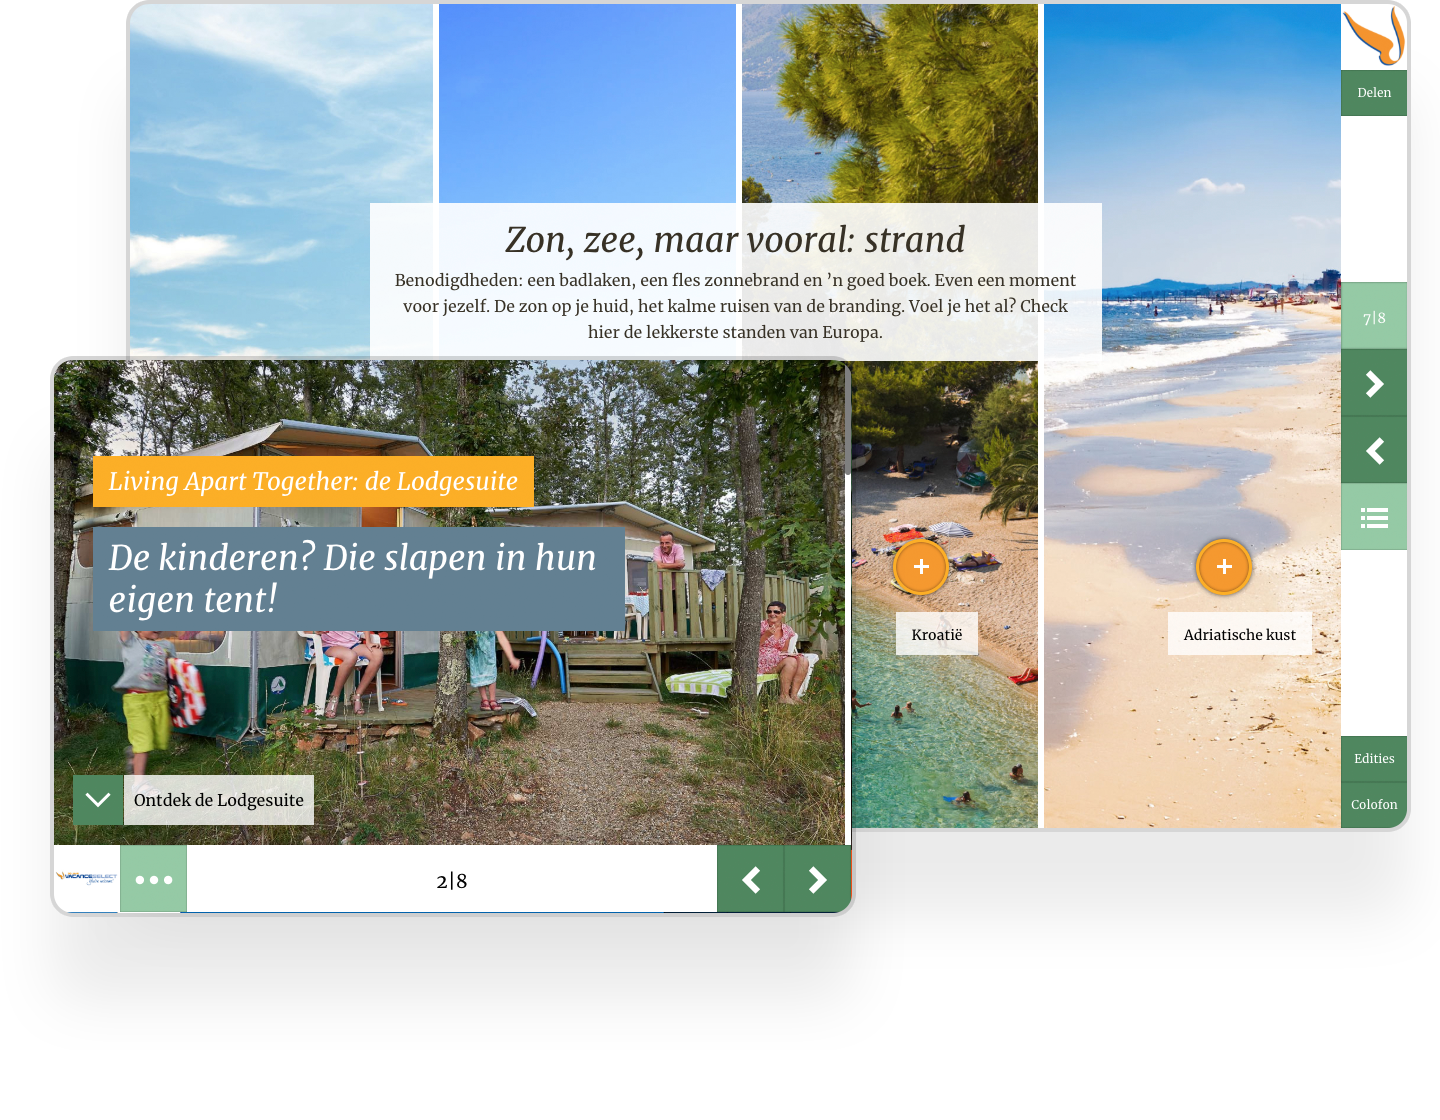 Vacanceselect increased conversion rates by 35% using Instant Magazine